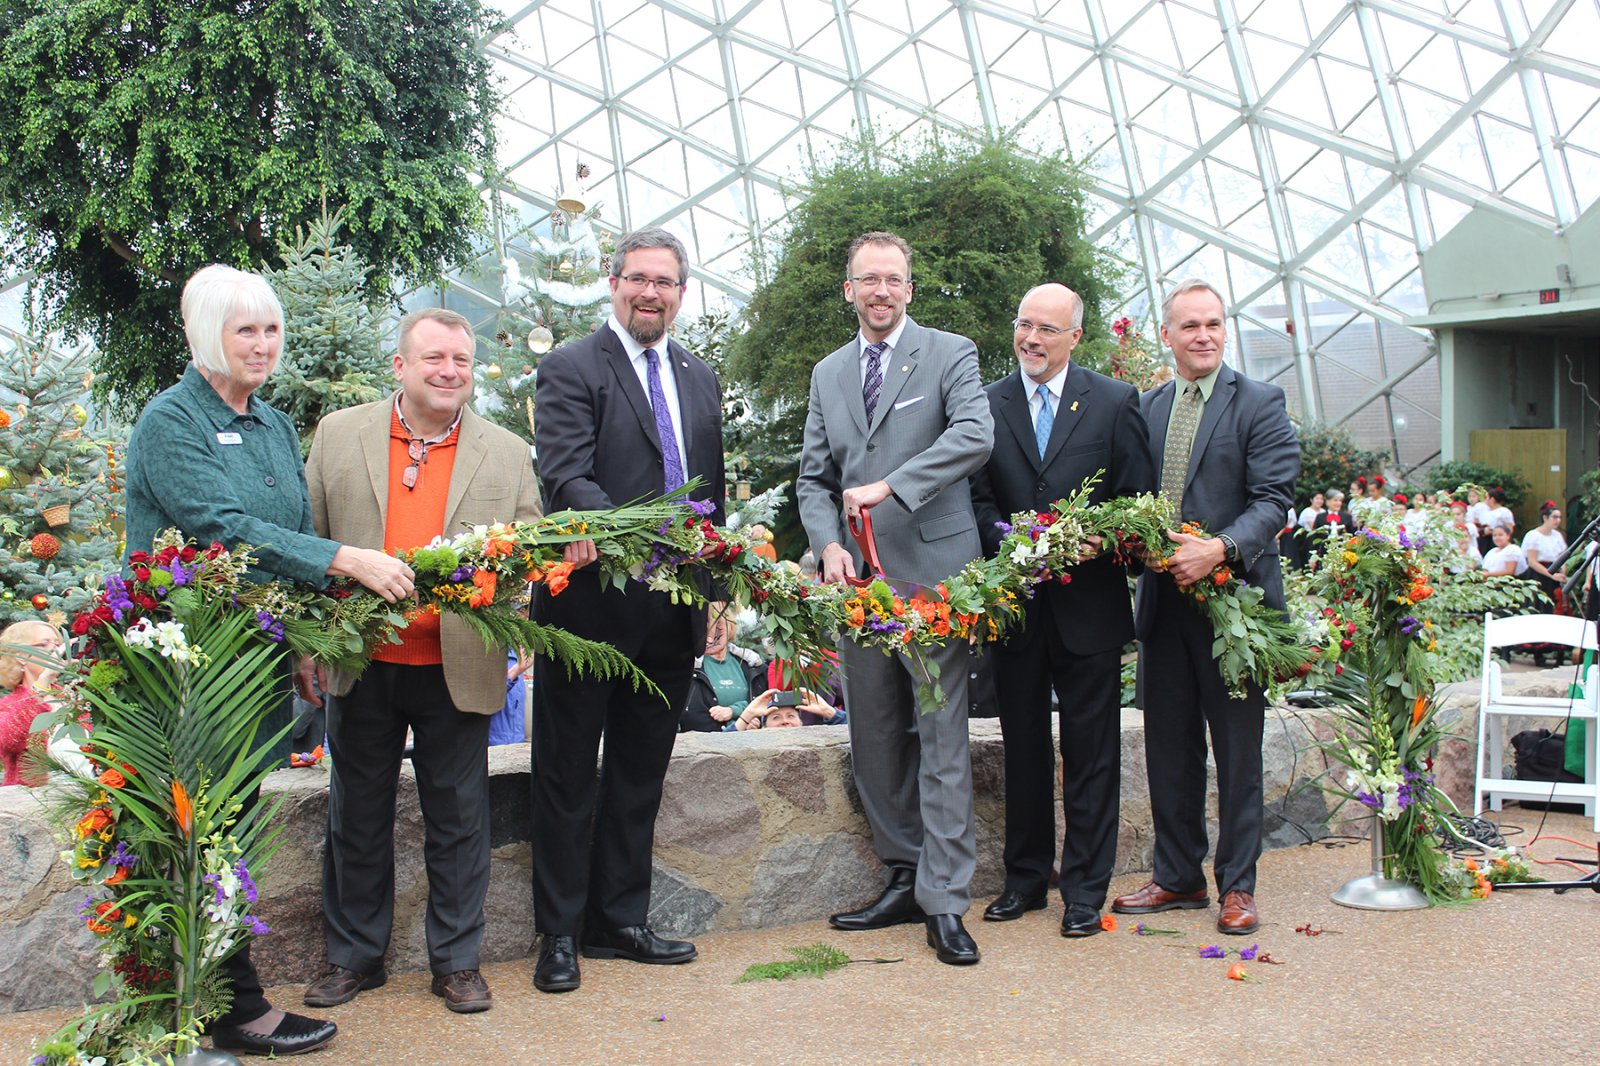 Officials cut a floral ribbon at the Domes Grand Reopening, December 1, 2016 L-R, Domes Director Sandy Folaron, State Rep. Josh Zepnick, Sup. Jason Haas, Sup. Theo Lipscomb, Northwestern Mutual President Eric Christopherson, Milwaukee County Parks Director John Dargle.